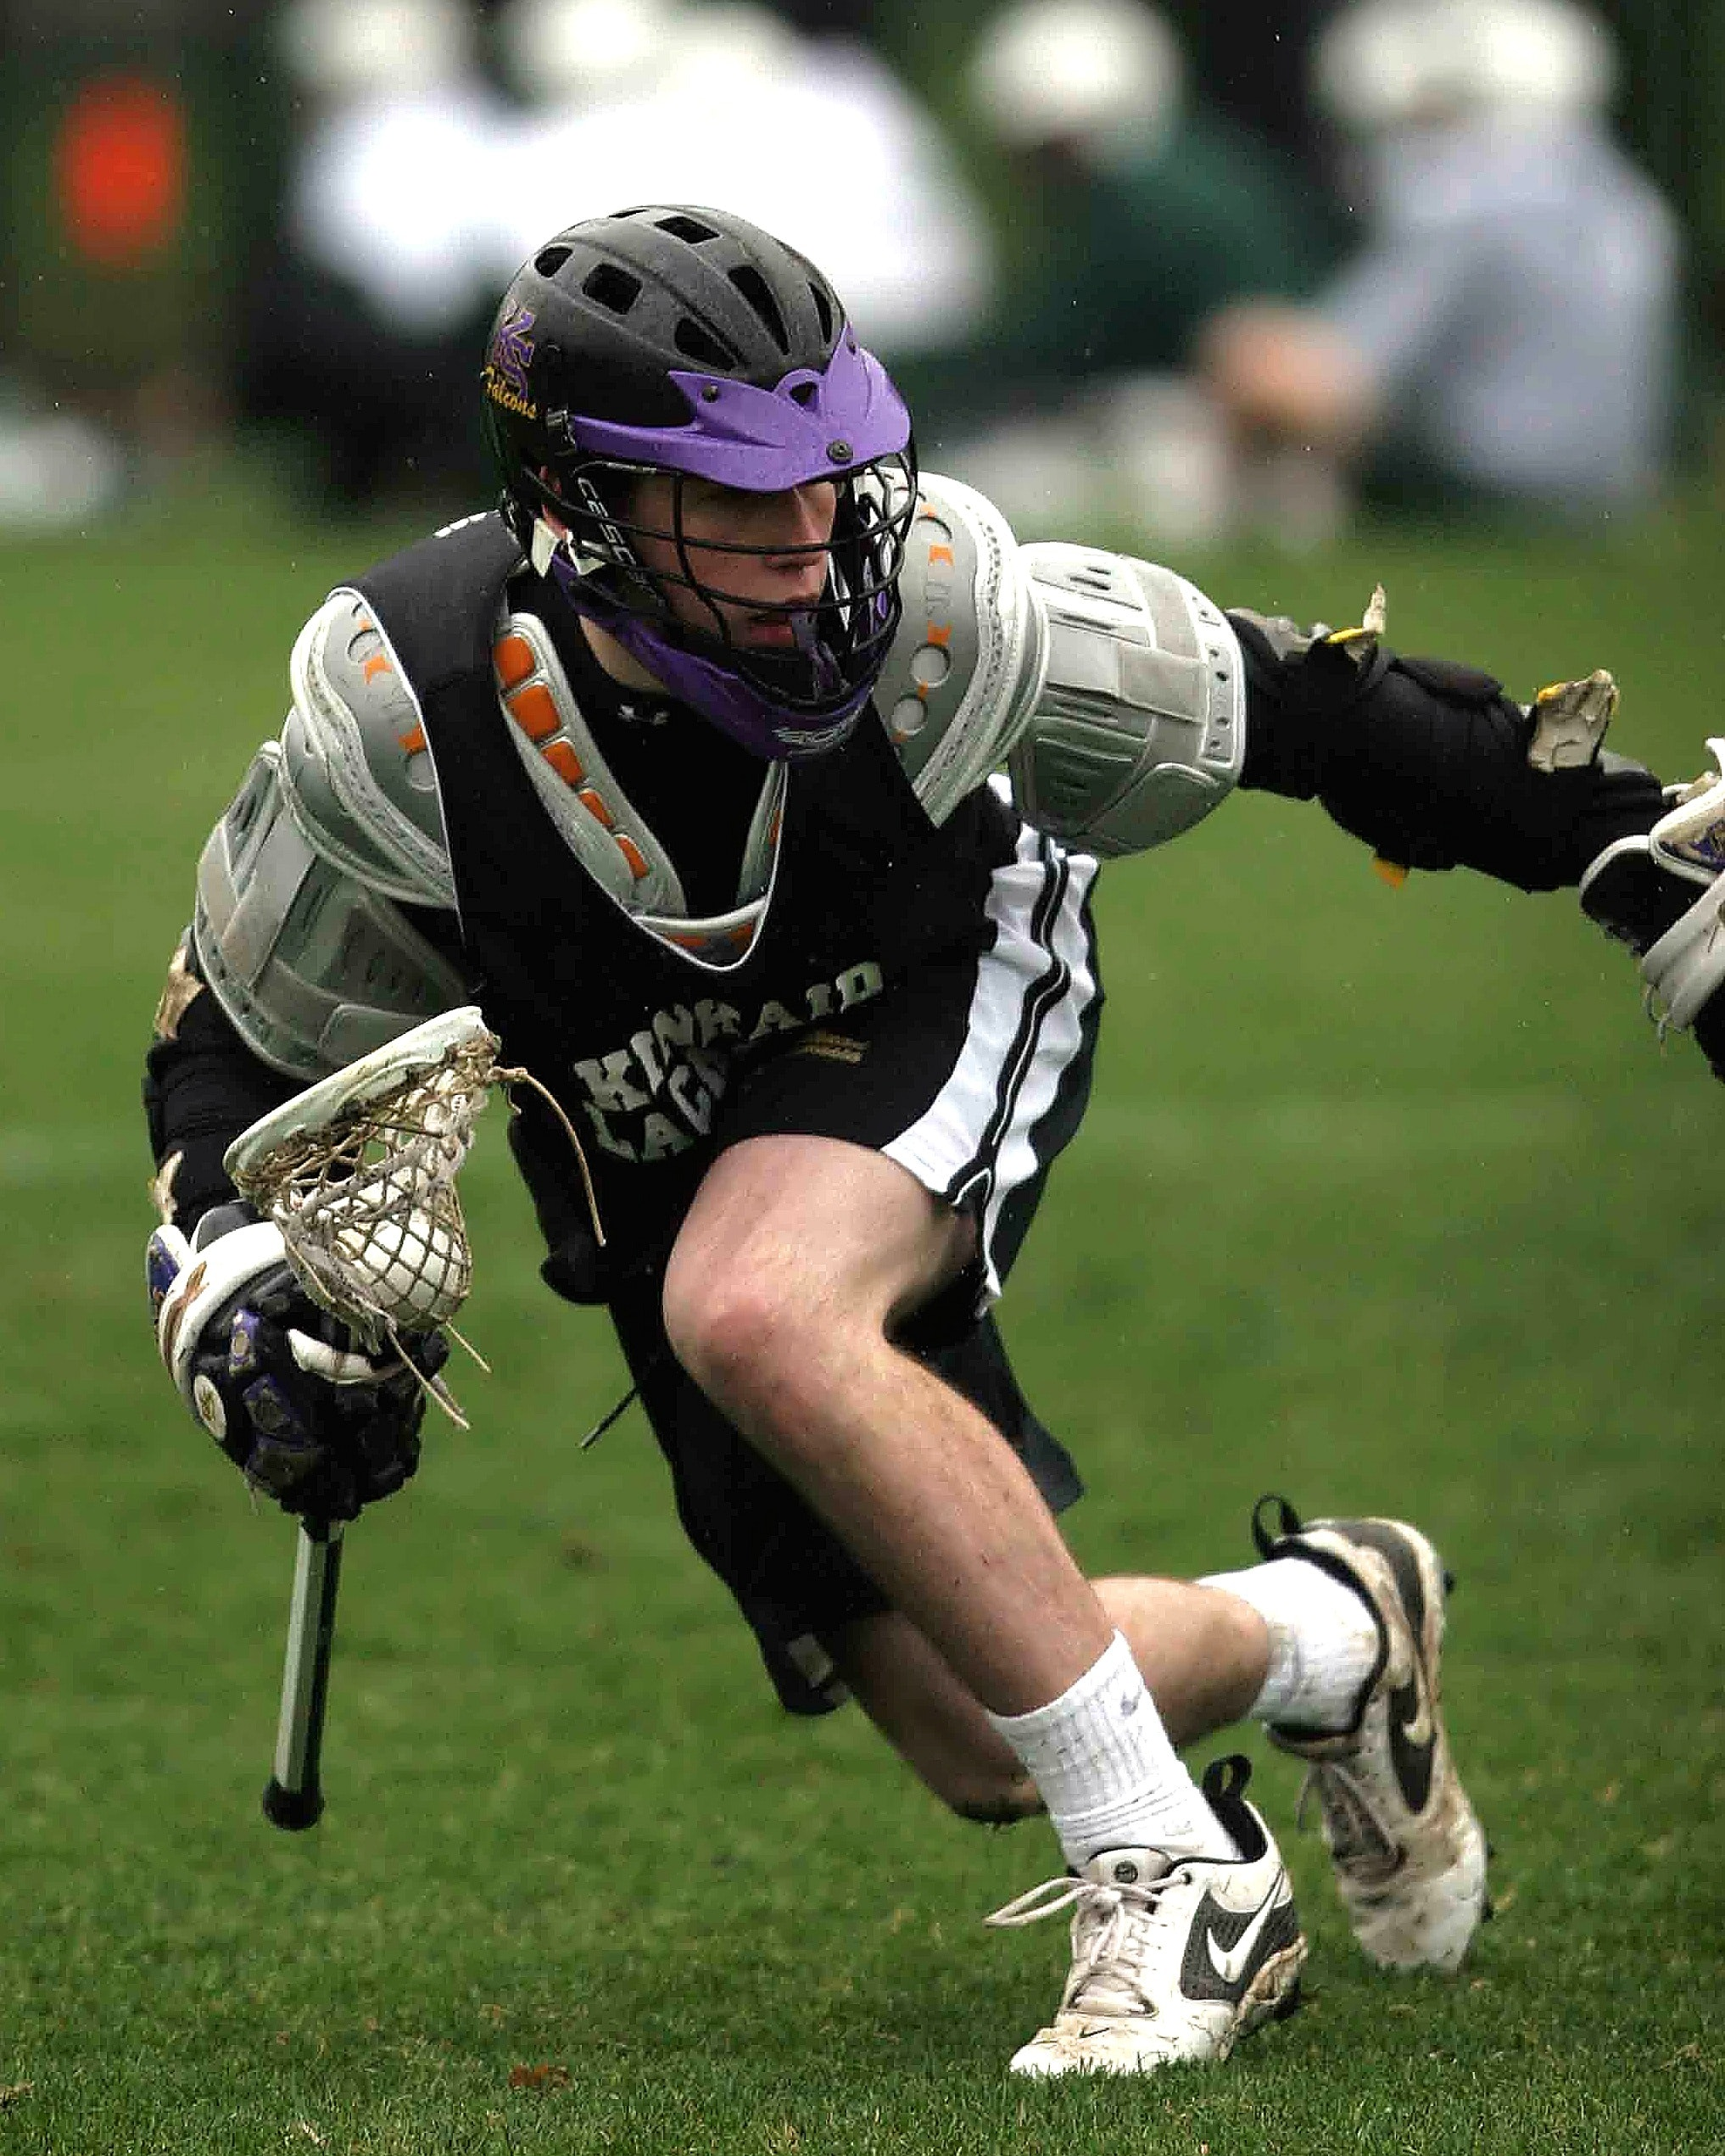 Person in black sports jersey playing lacrosse photo